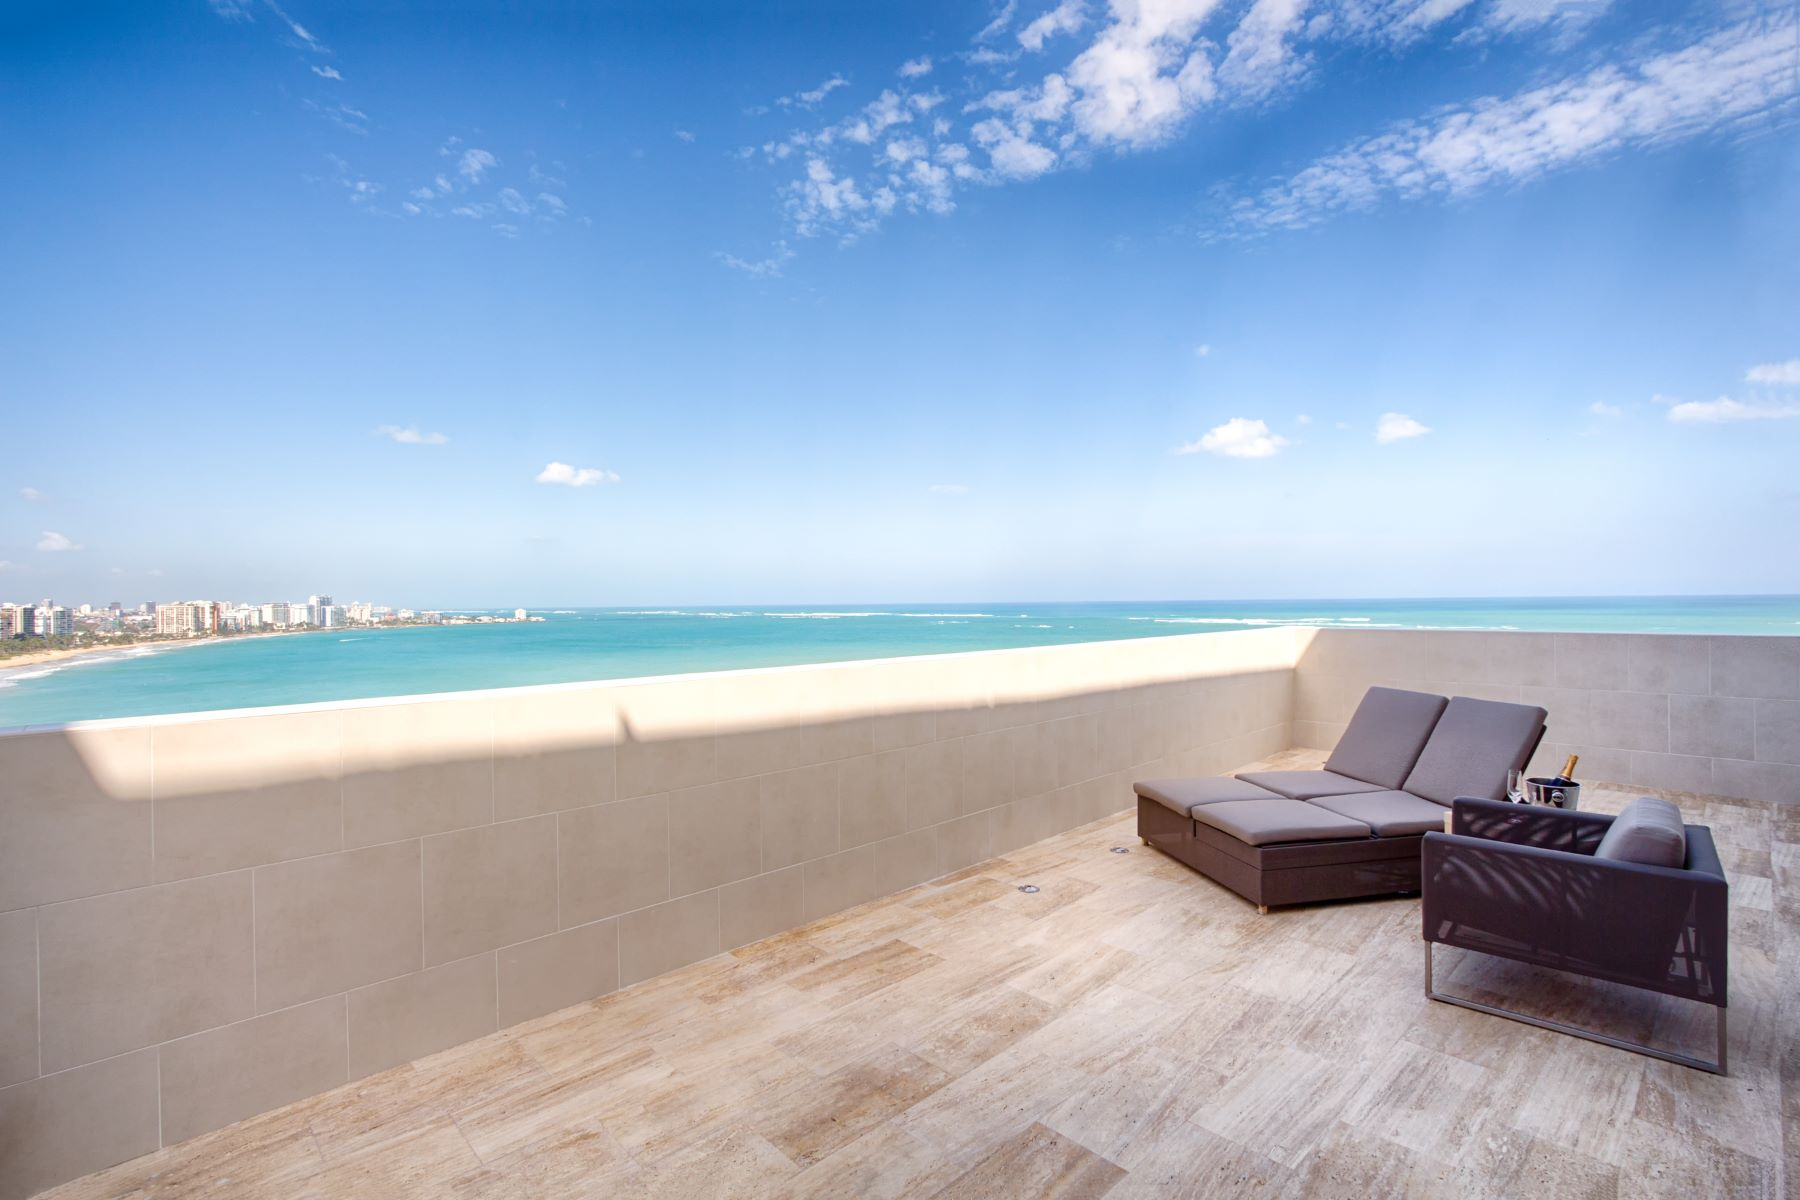 Duplex for Sale at The Ultimate Beach Penthouse 6165 Isla Verde Ave. PH Carolina, 00979 Puerto Rico